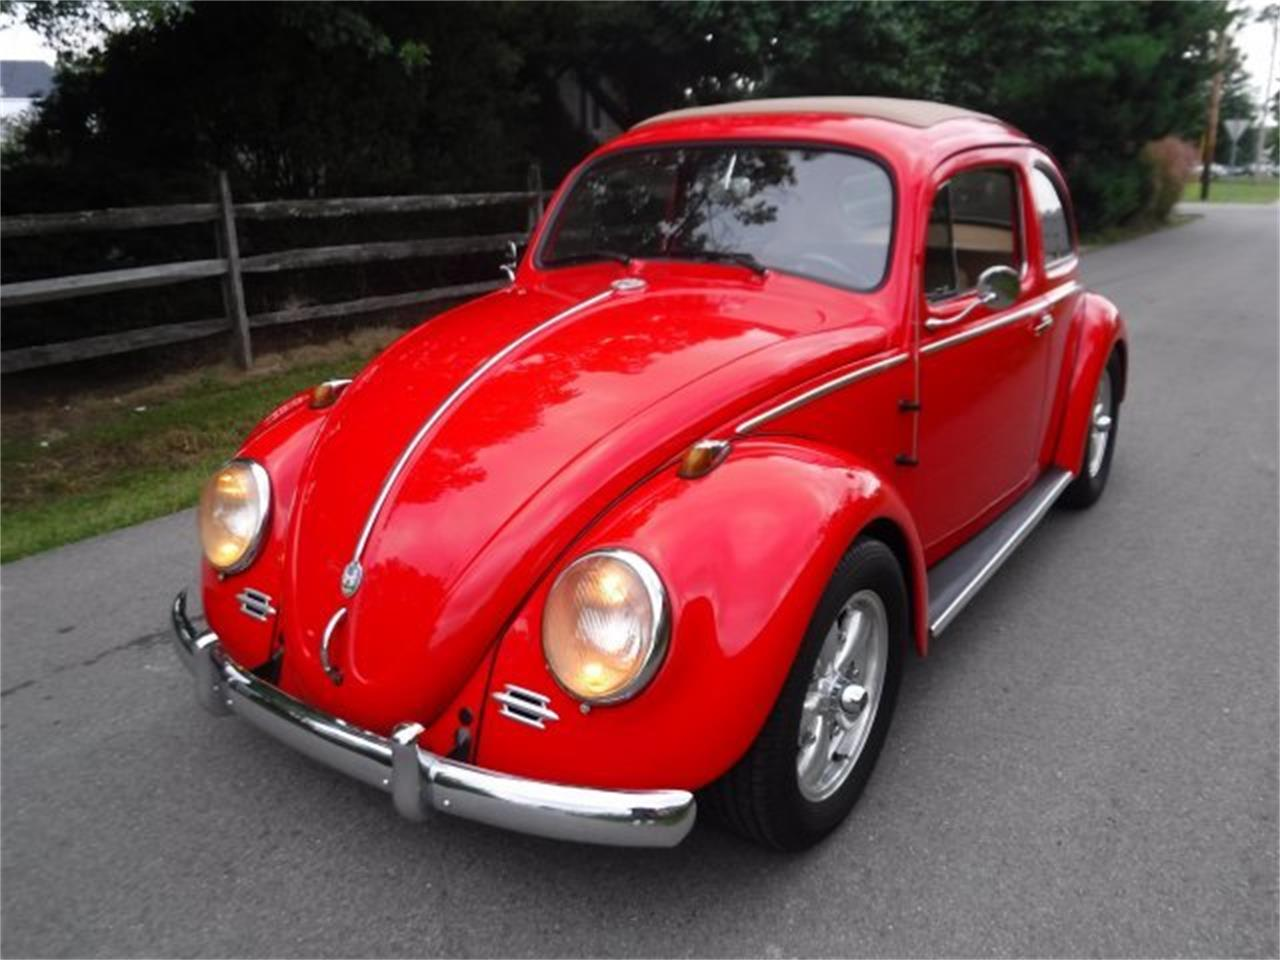 Large Picture of Classic 1959 Volkswagen Beetle located in Ohio - $27,500.00 - OIZB